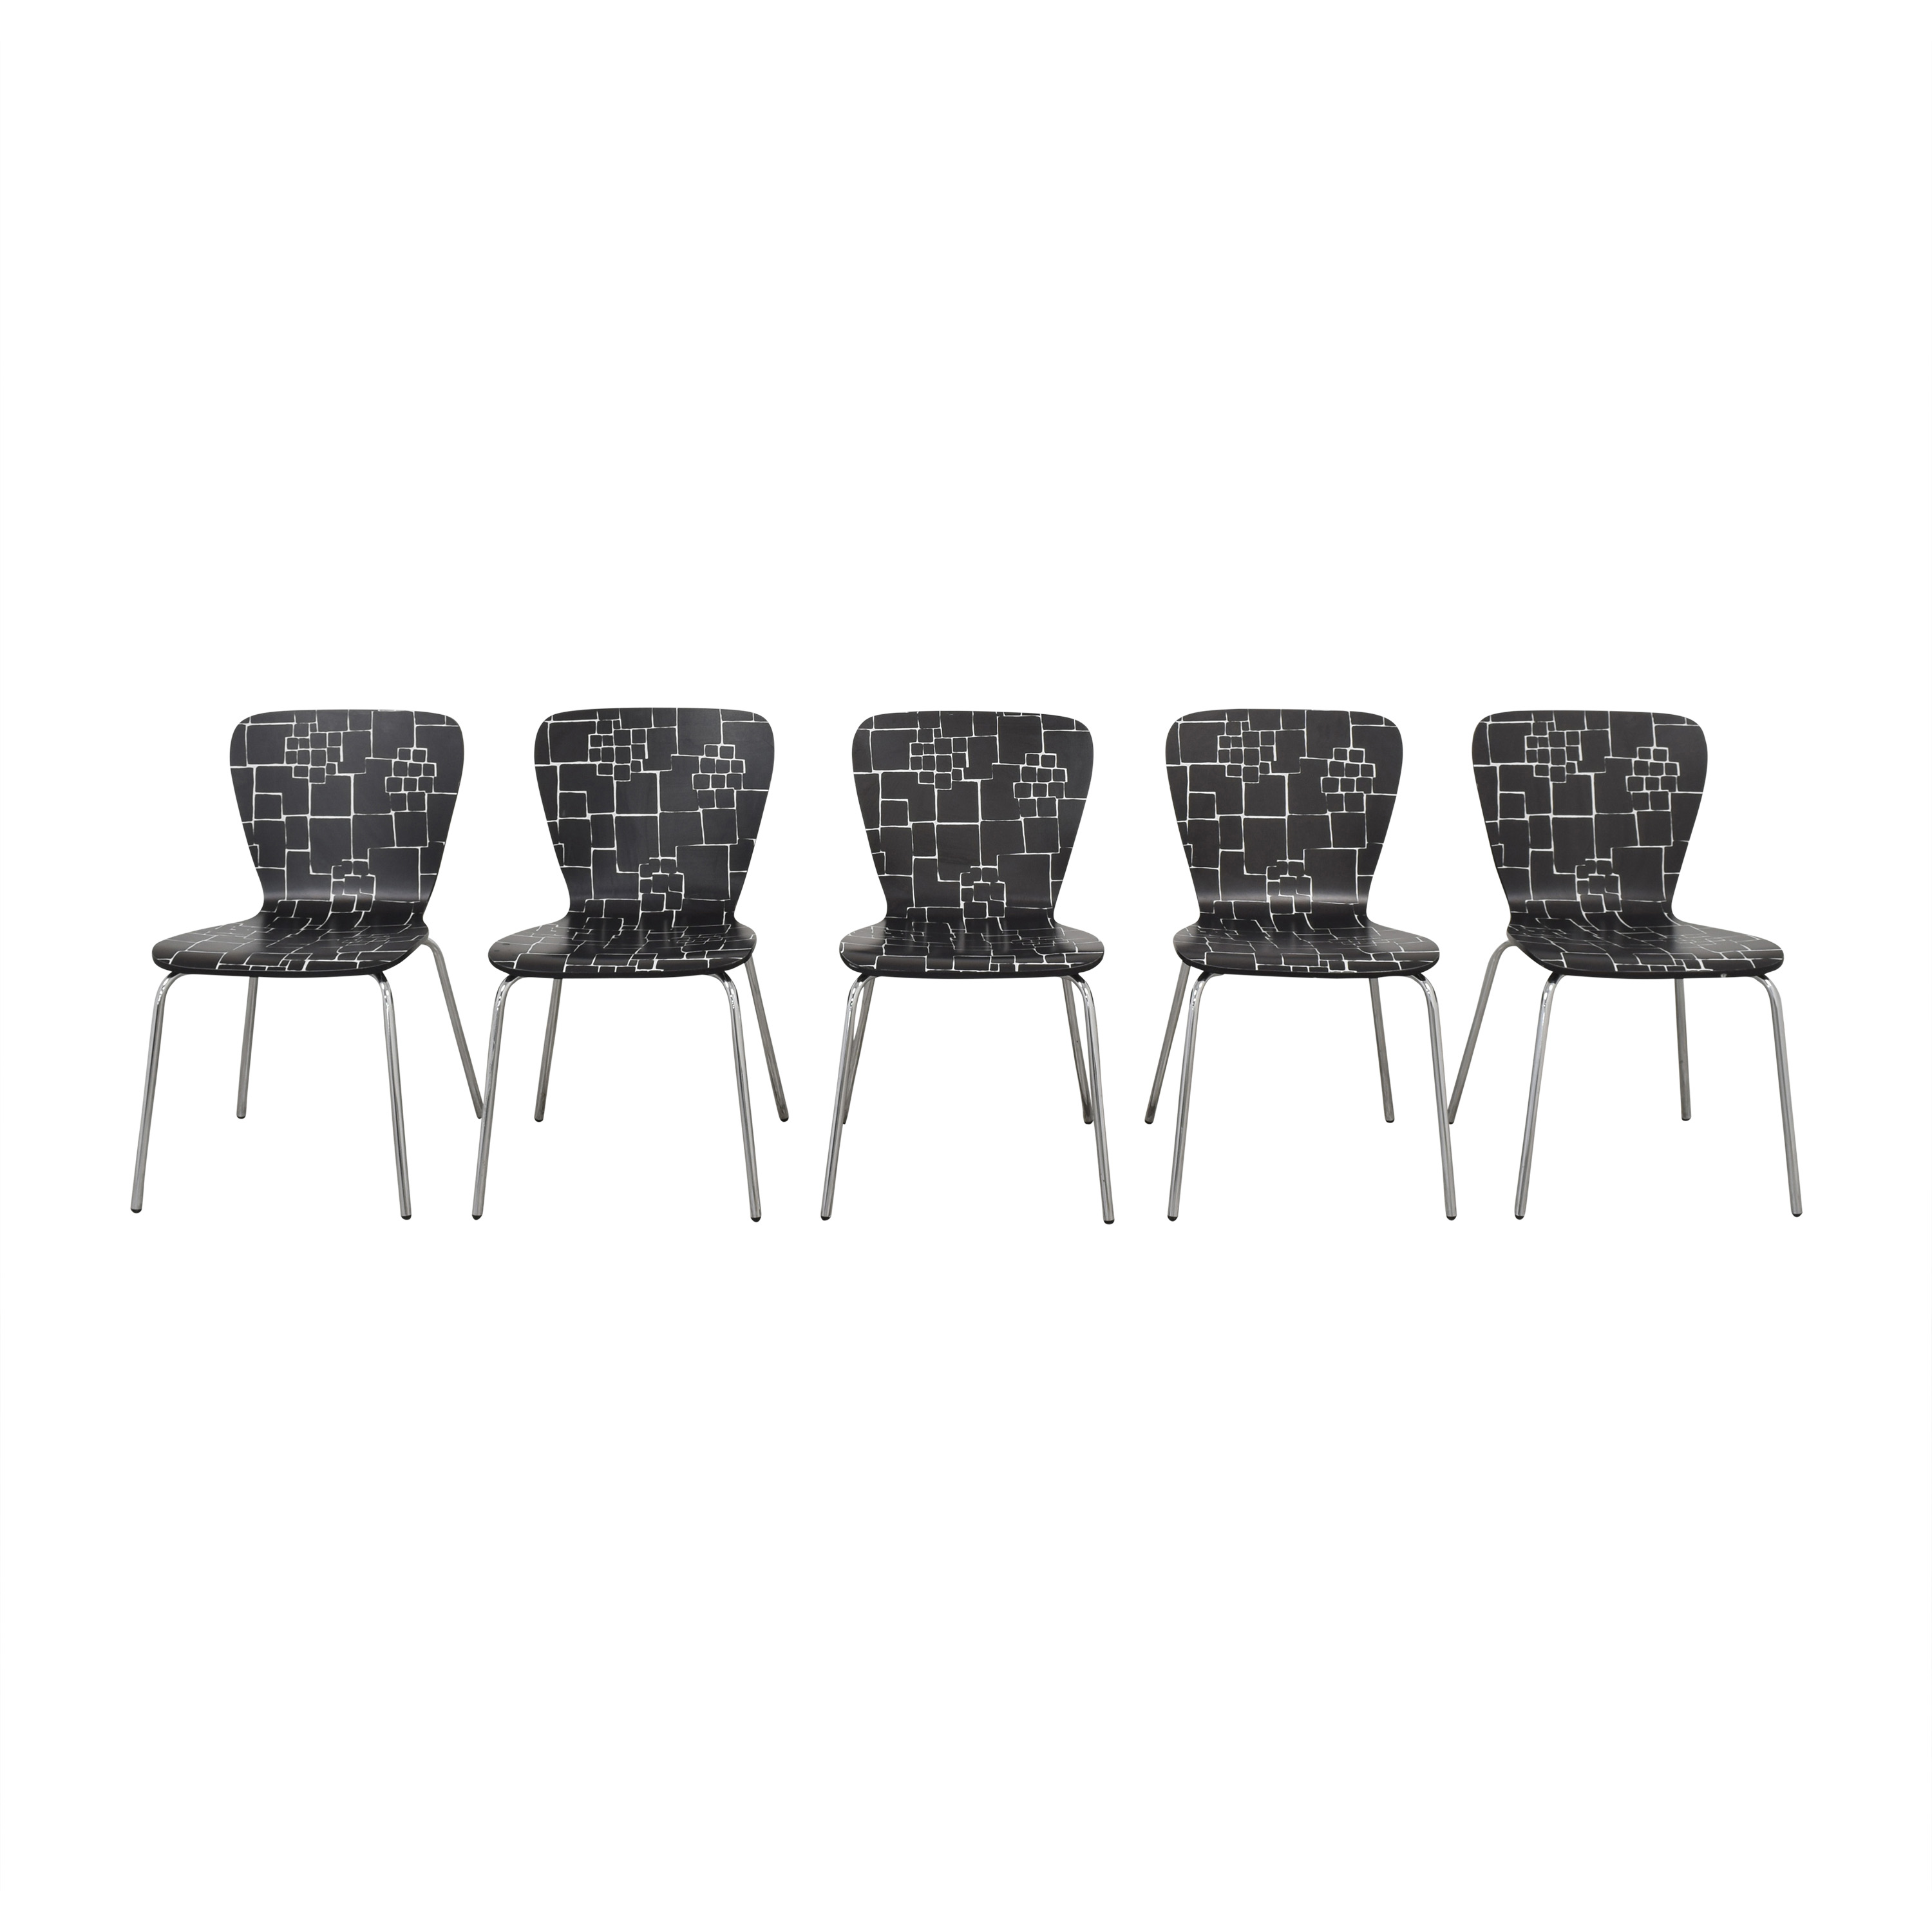 Crate & Barrel Crate & Barrel Felix Side Dining Chairs black and white